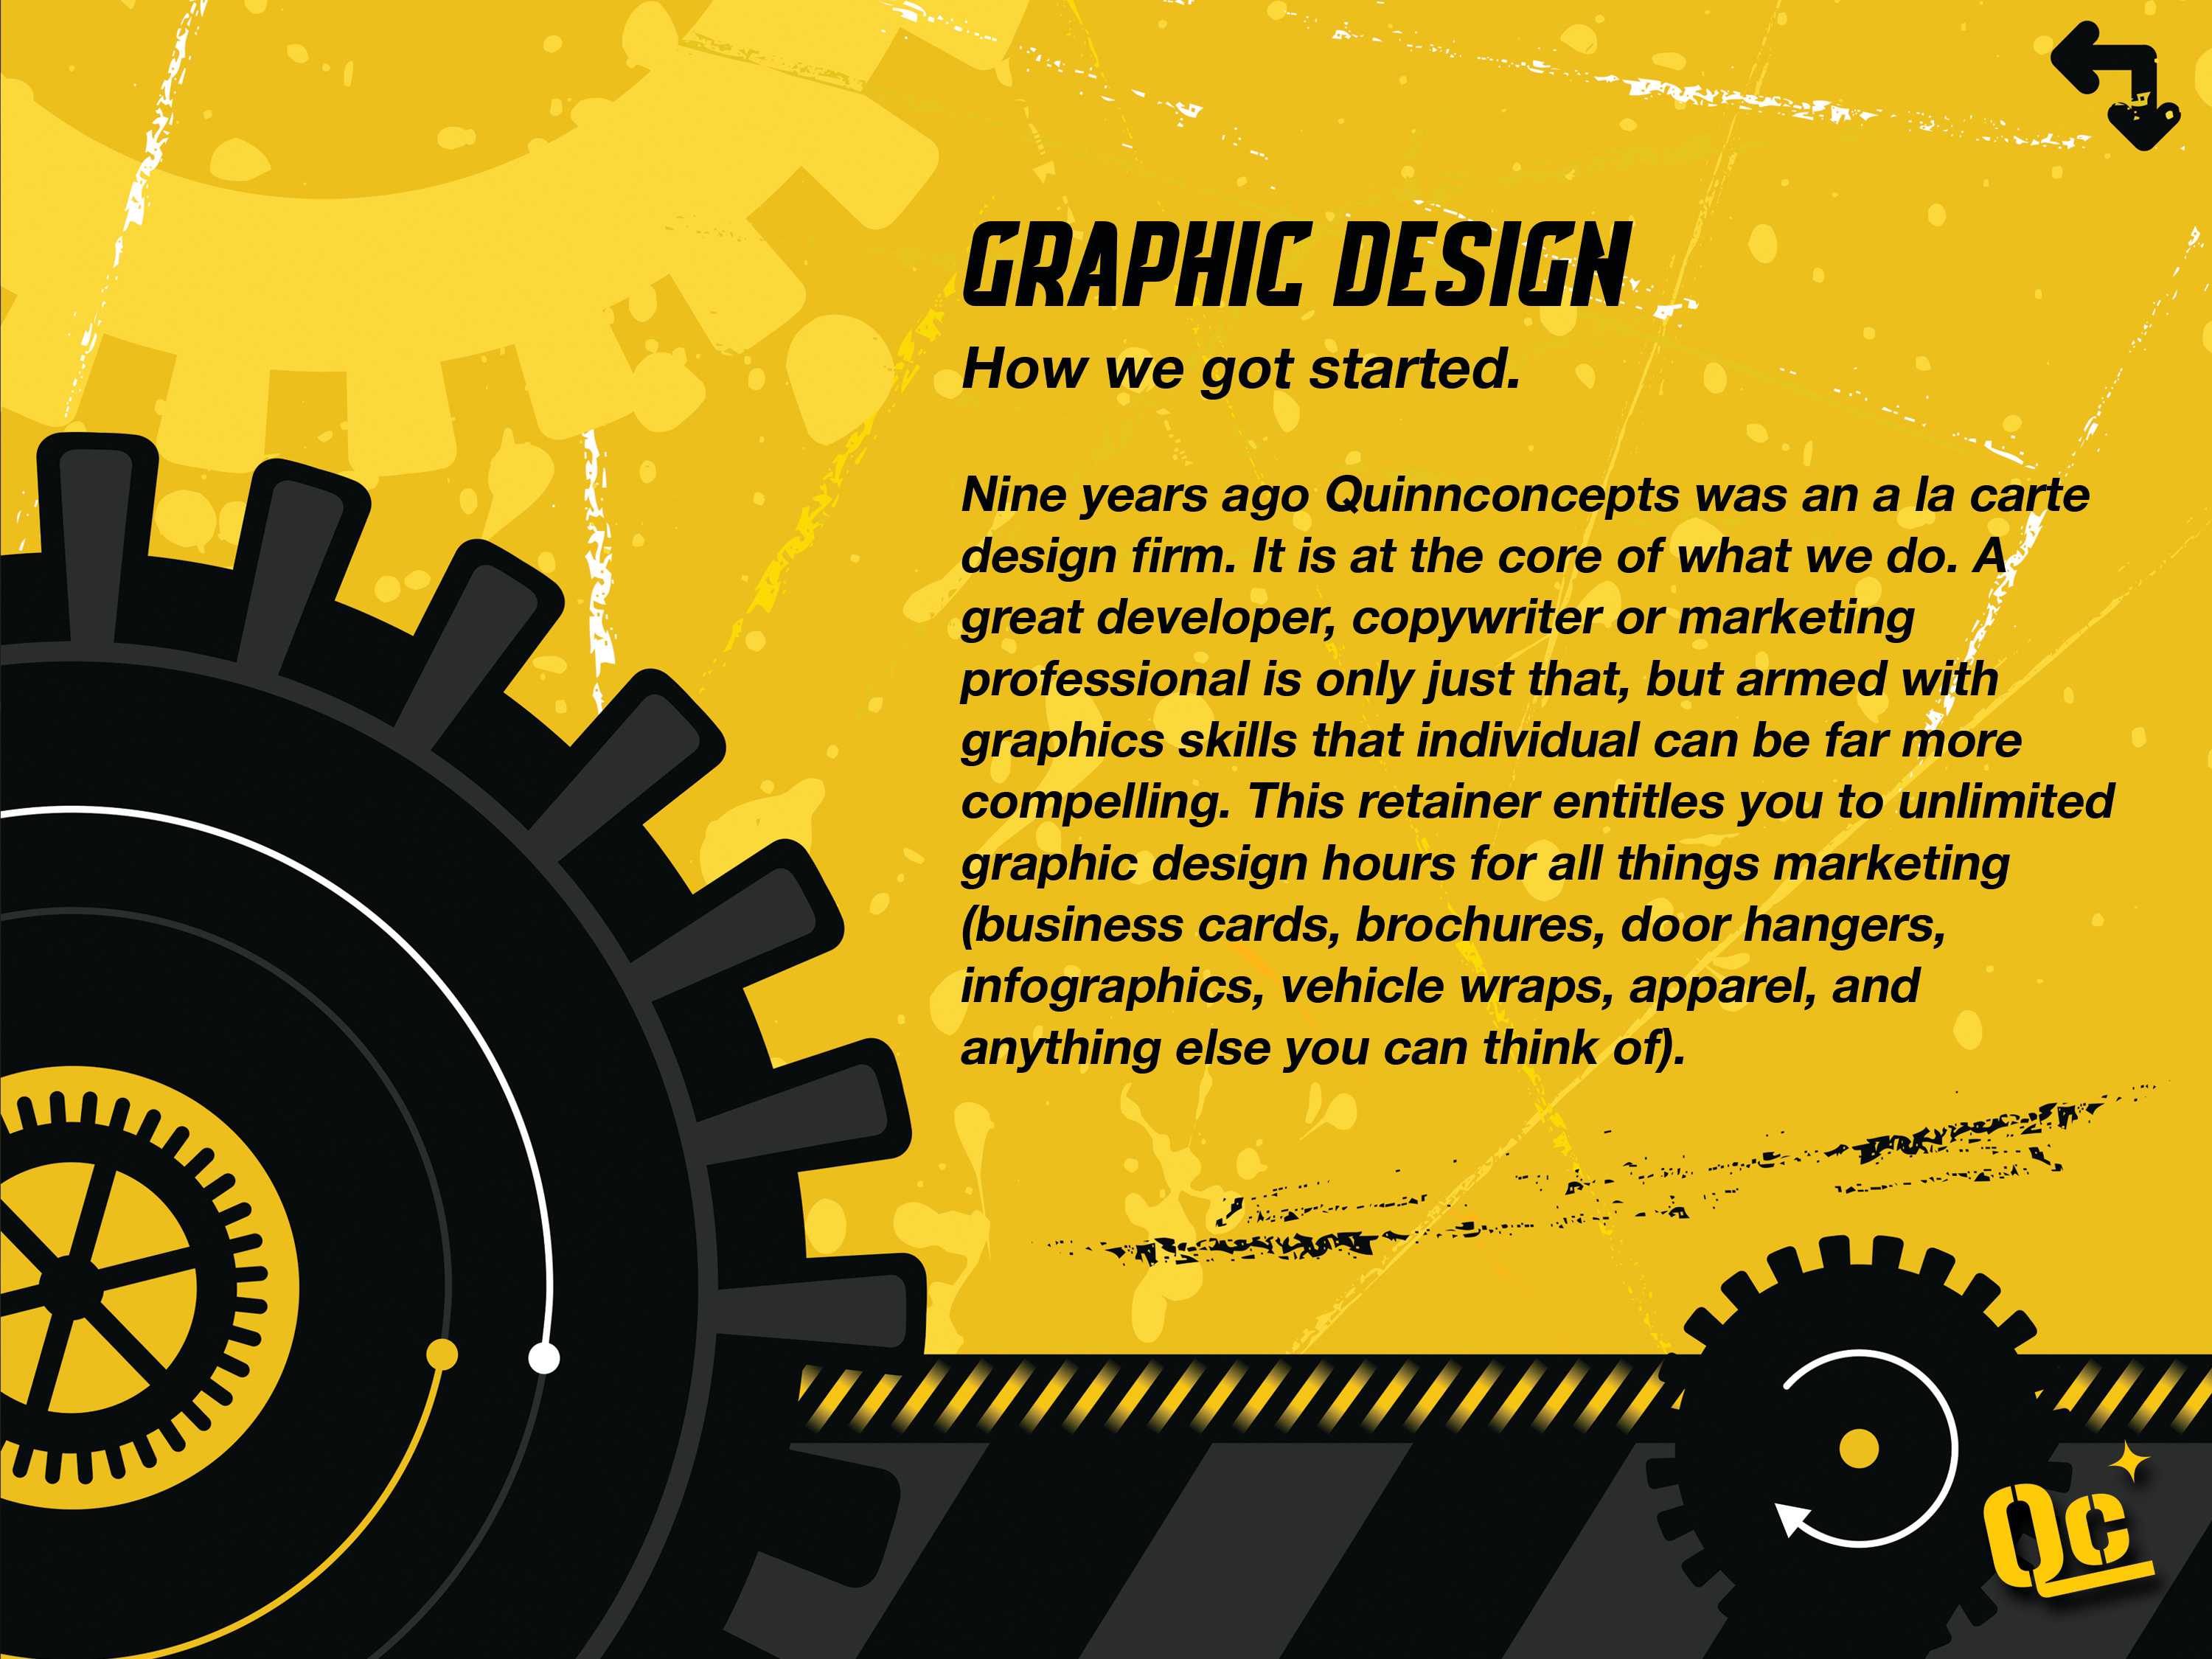 slide 7 - graphic design